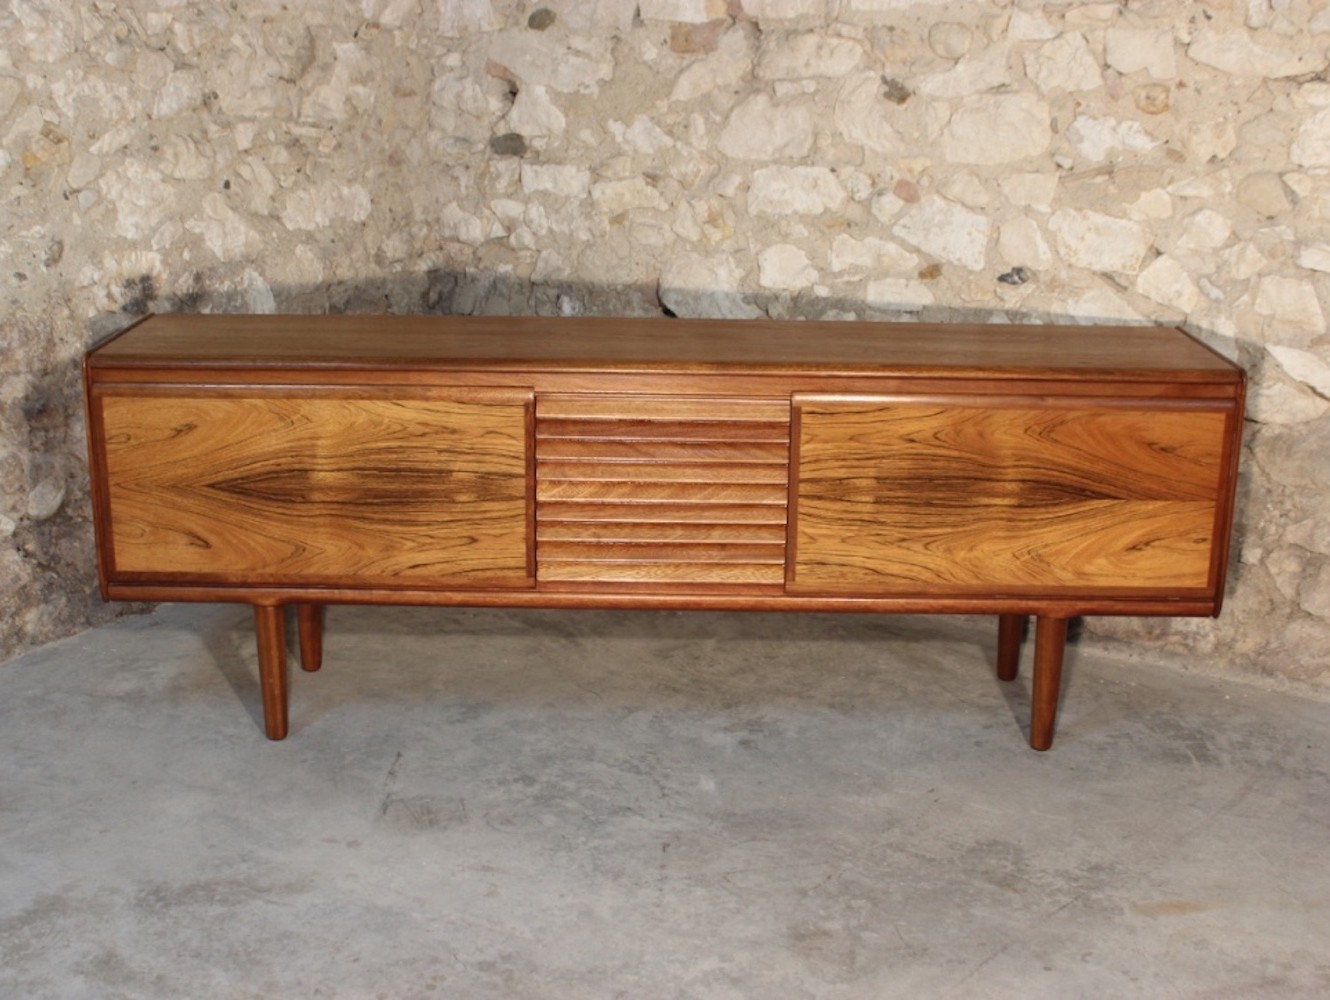 Teak & rosewood vintage sideboard by Philip Hussey for White & Newton